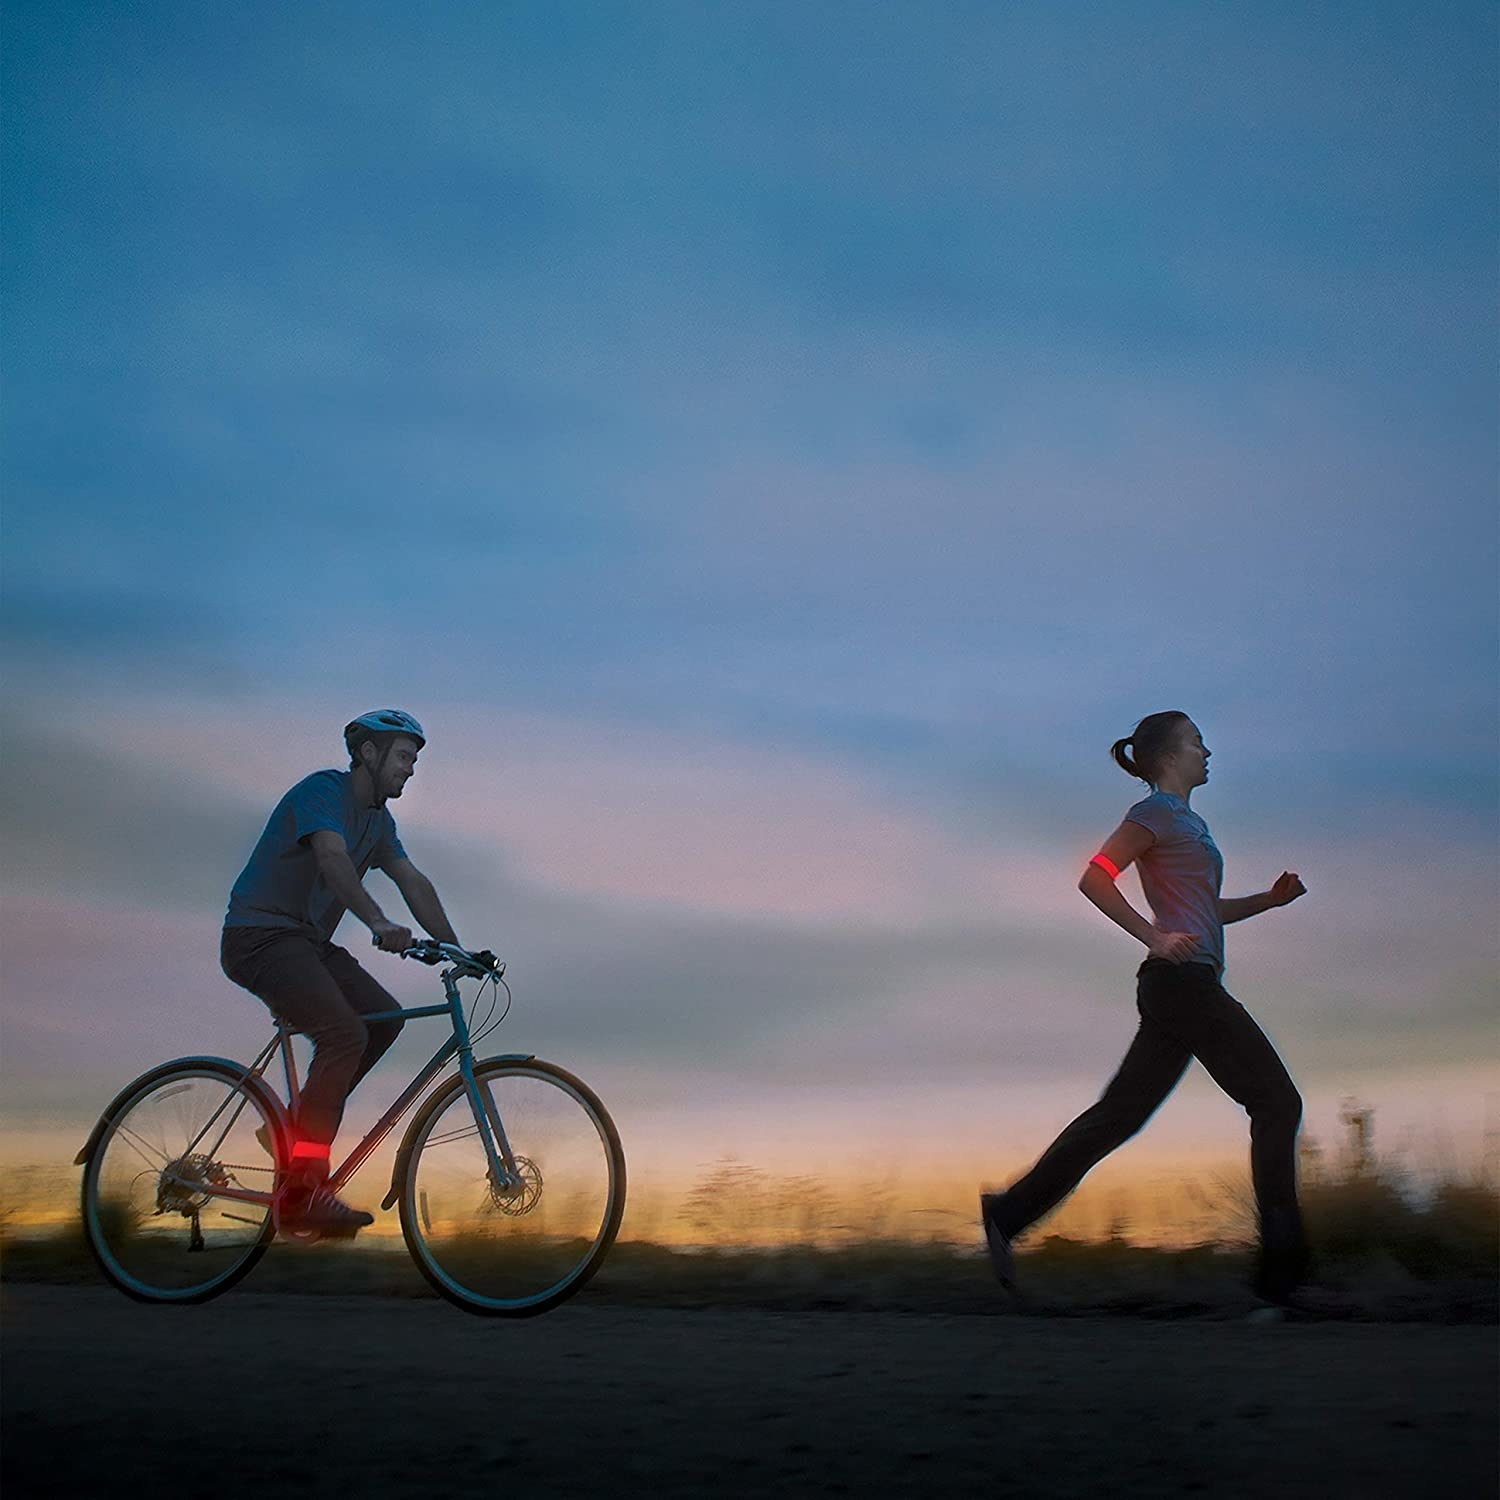 person on a bike and person running both with the strap on